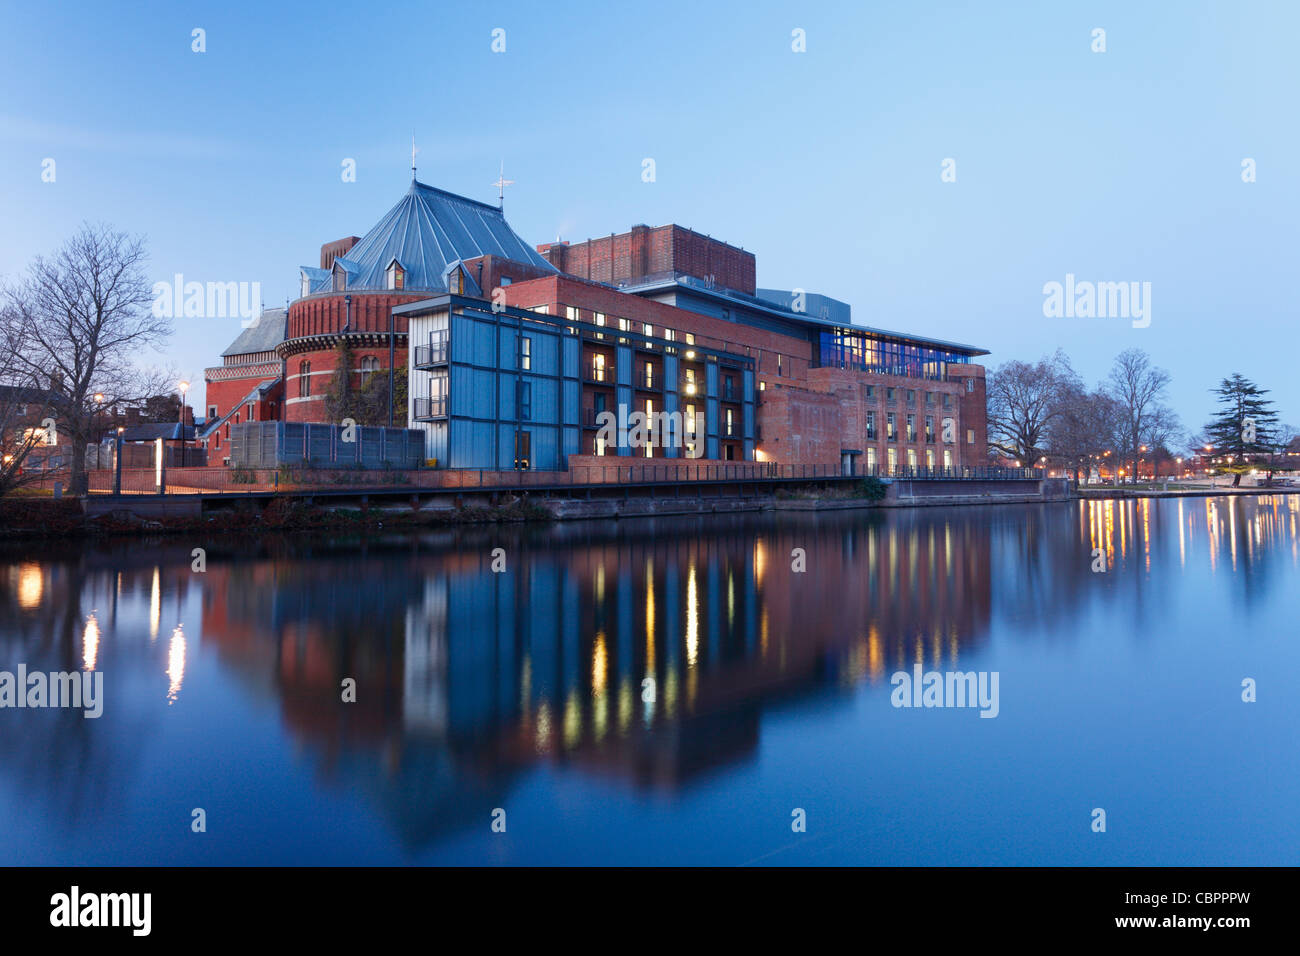 Royal Shakespeare Theatre am Fluss Avon in der Abenddämmerung. Stratford-upon-Avon. Warwickshire. England. Stockbild